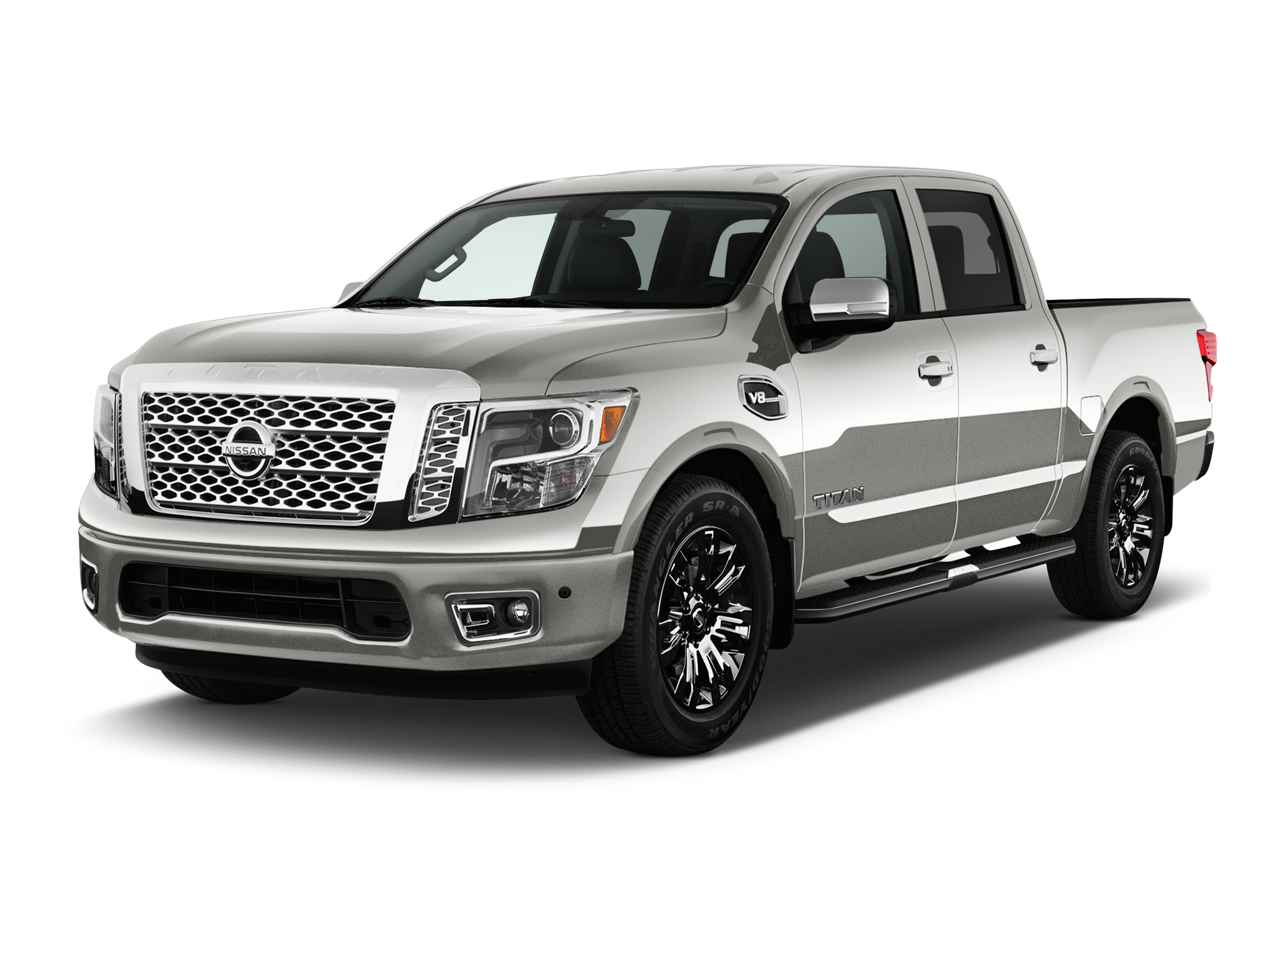 Elk Grove Chevrolet >> New 2018 Nissan Titan Platinum Reserve in Elk Grove, CA - For Any Auto